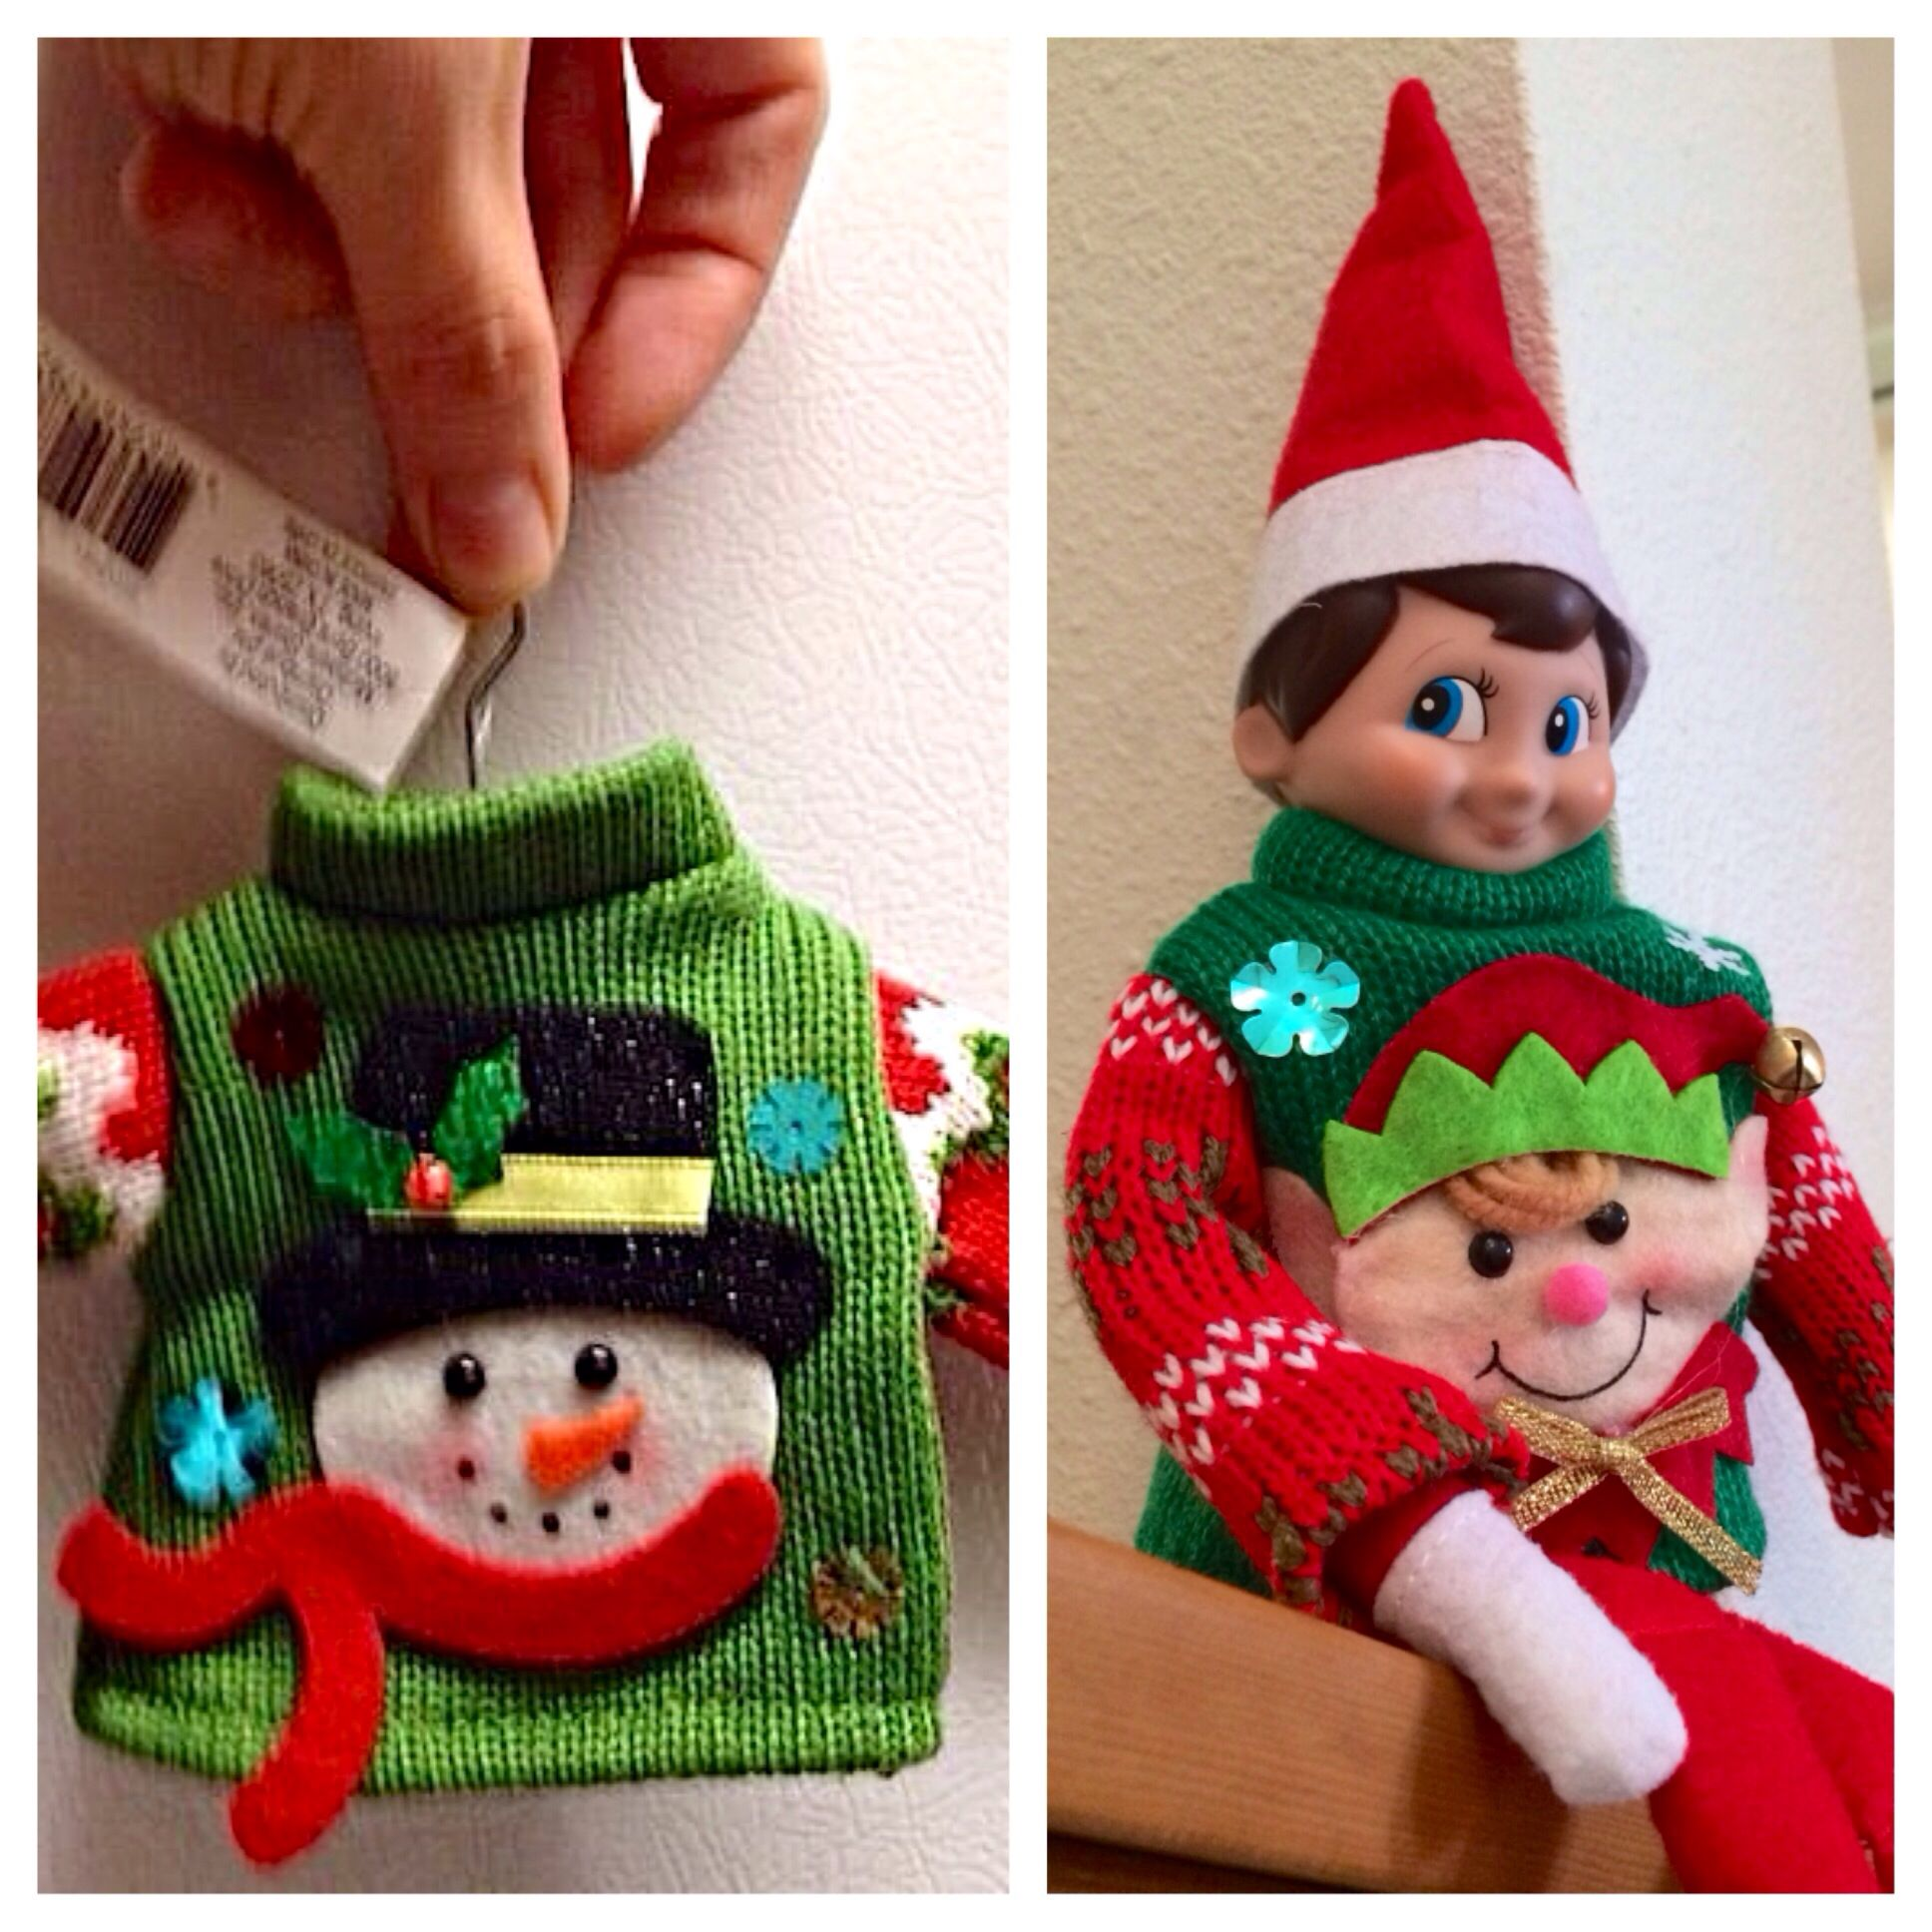 Elf On The Shelf Michael S Craft Store Carries These Little Sweater Ornaments For Around 5 Tha Christmas Crafts For Adults Michael Christmas Christmas Crafts